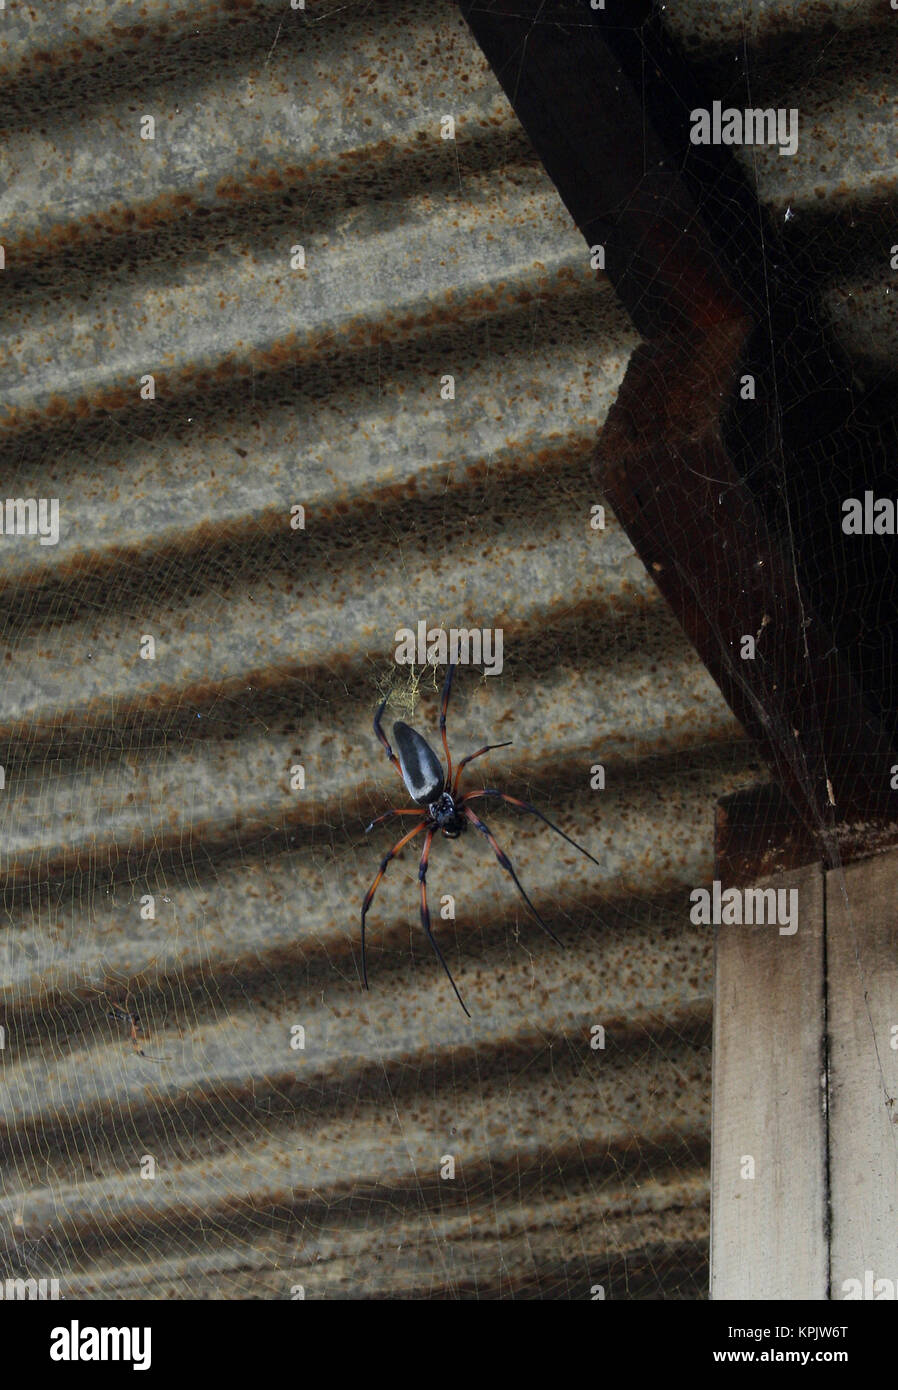 Red-legged golden orb-web spider against corrugated iron roof ceiling, La Digue Island, Seychelles. - Stock Image